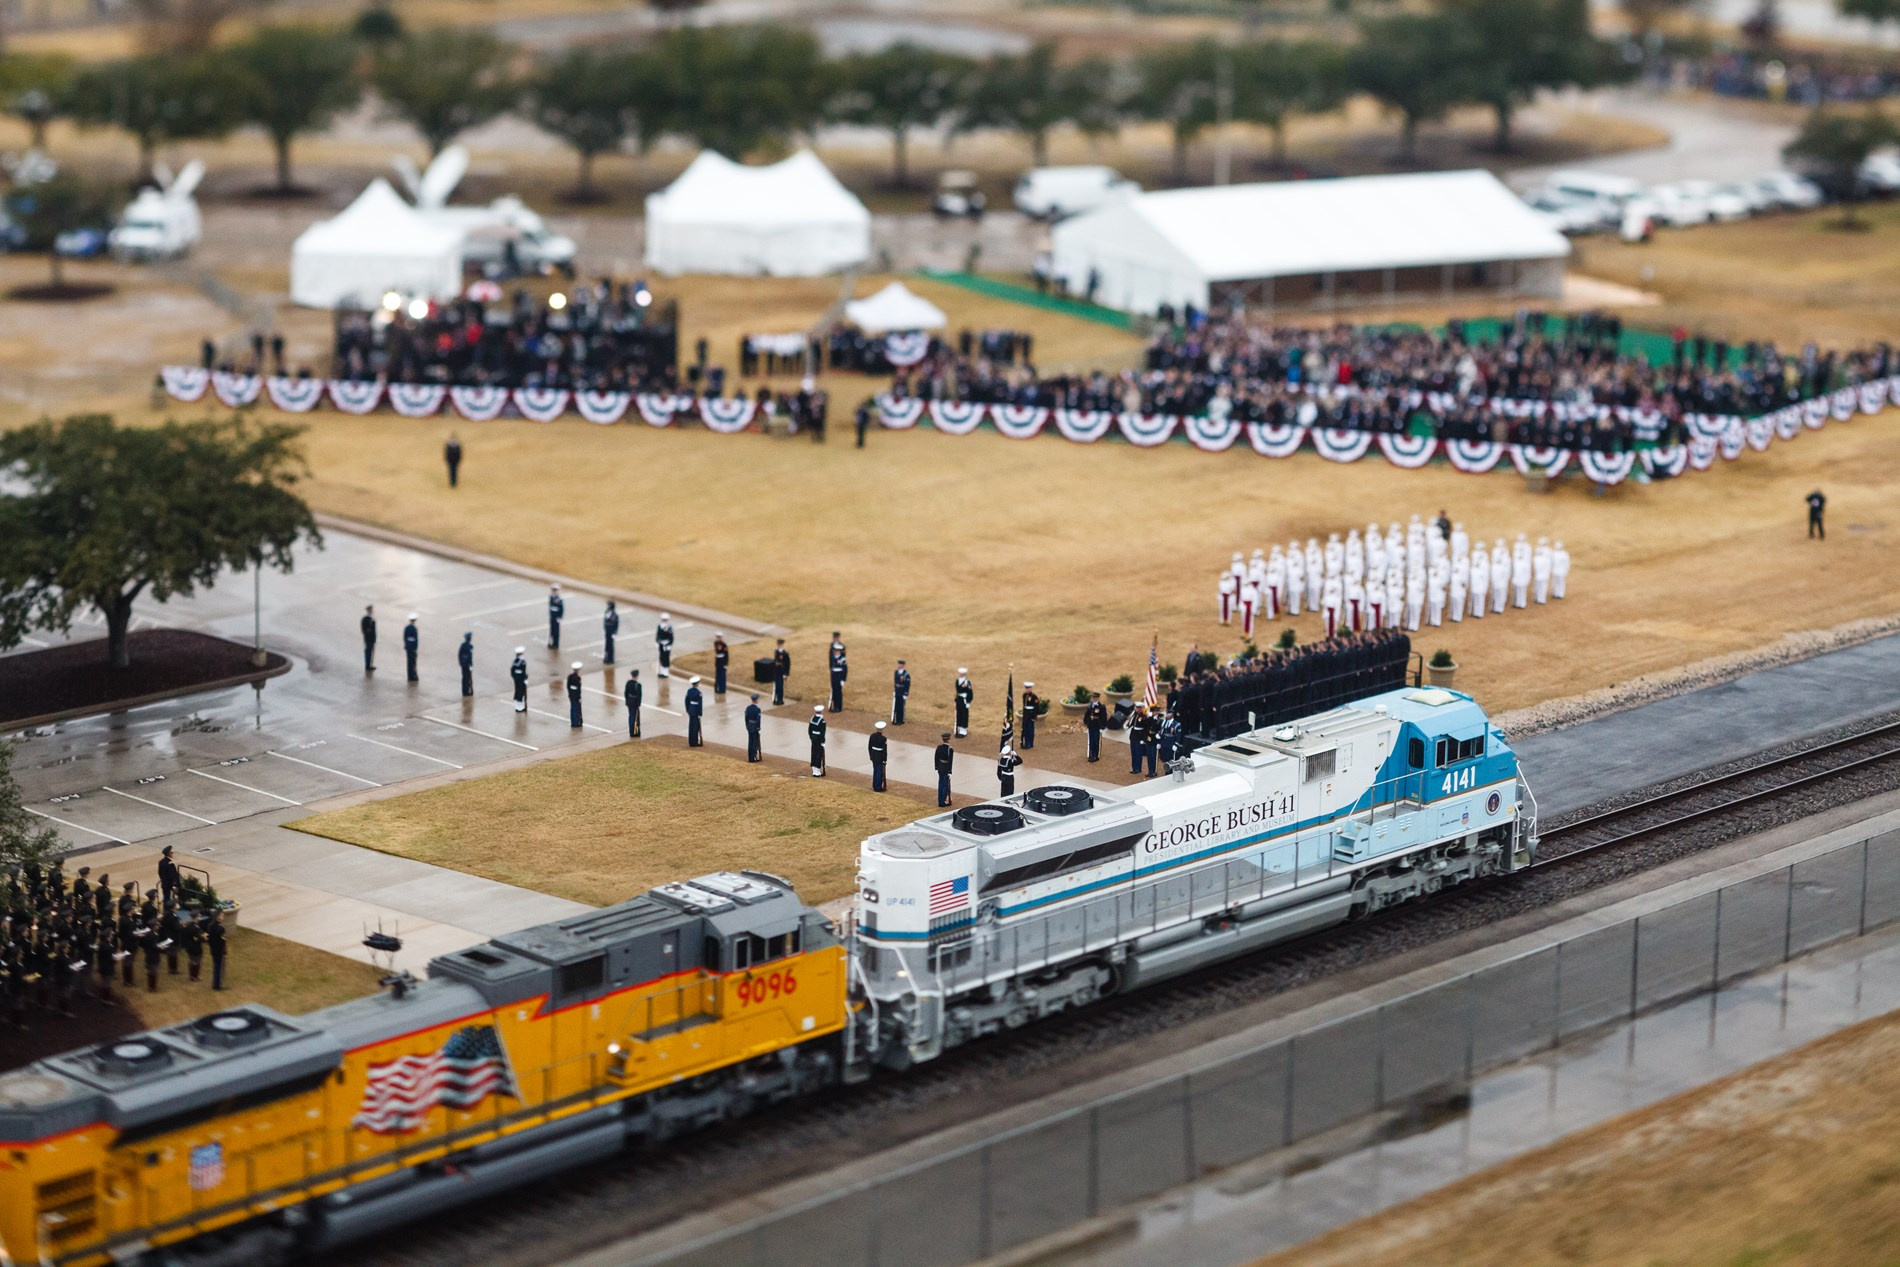 Capturing History as Bush's Train Reaches A&M